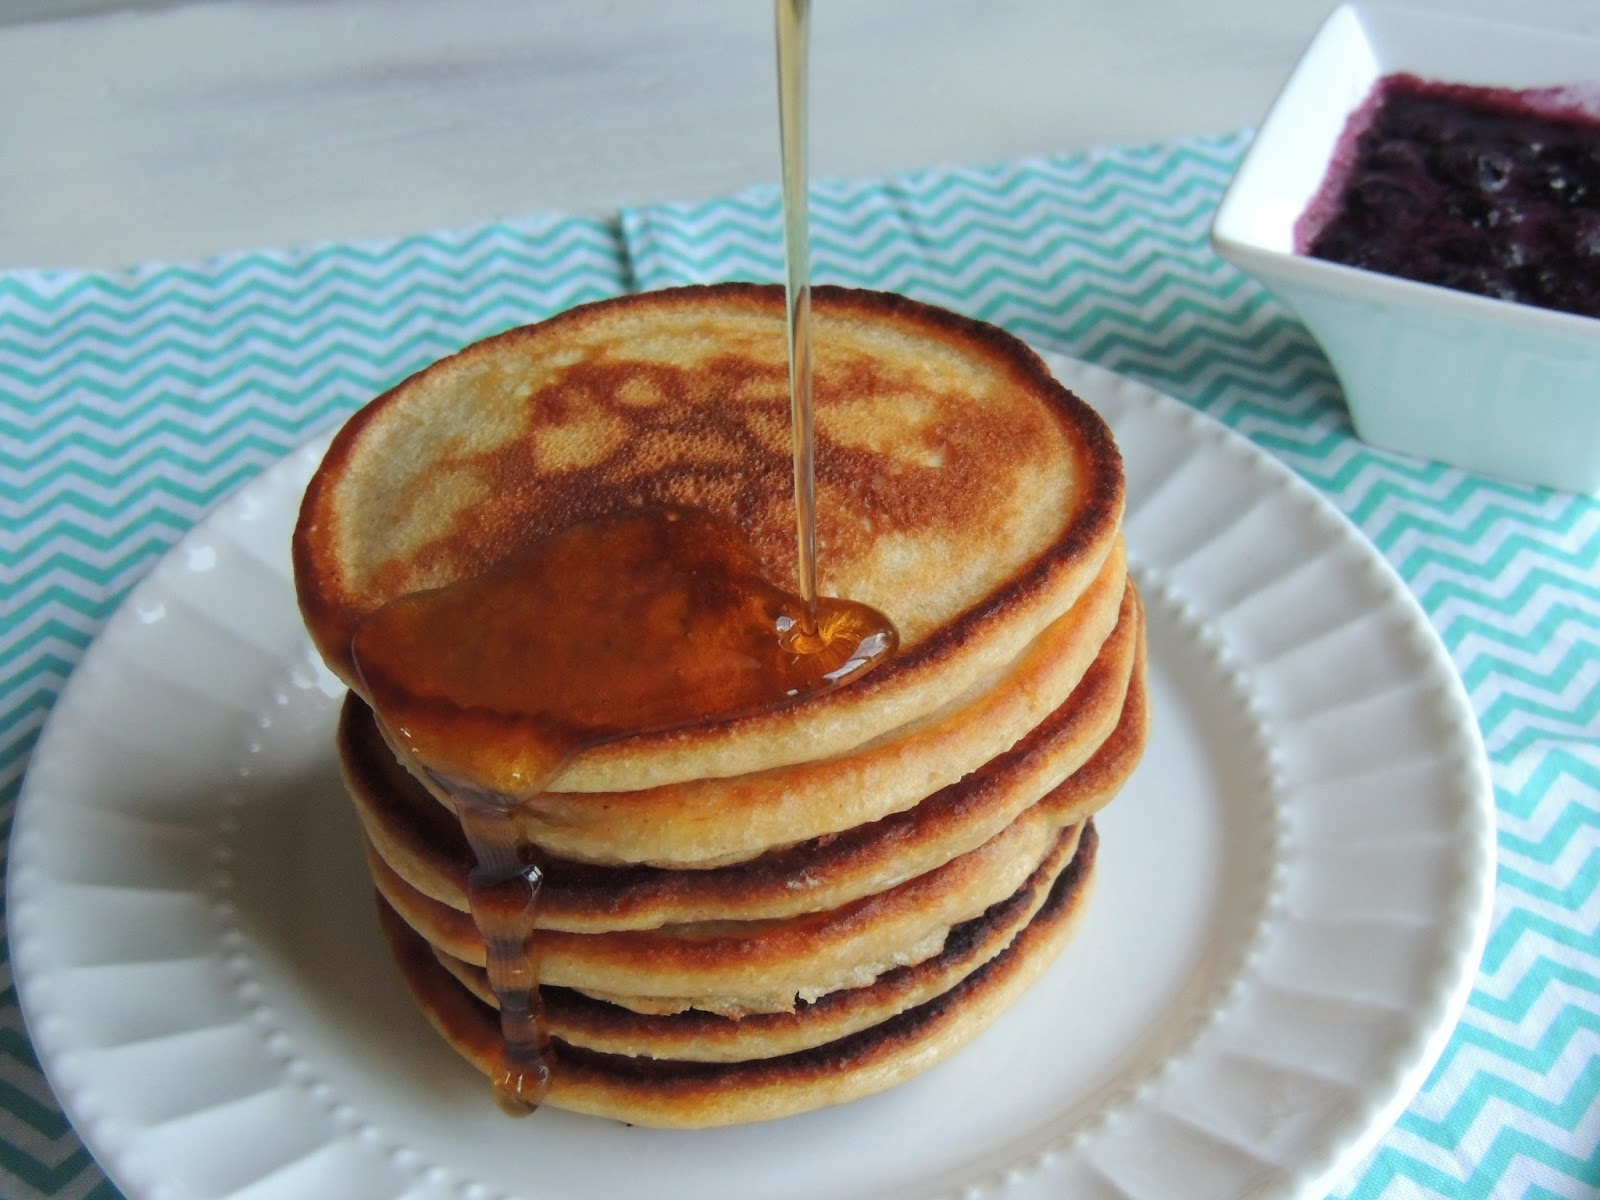 Leave a Happy Plate: Peanut Butter and Jelly Pancakes